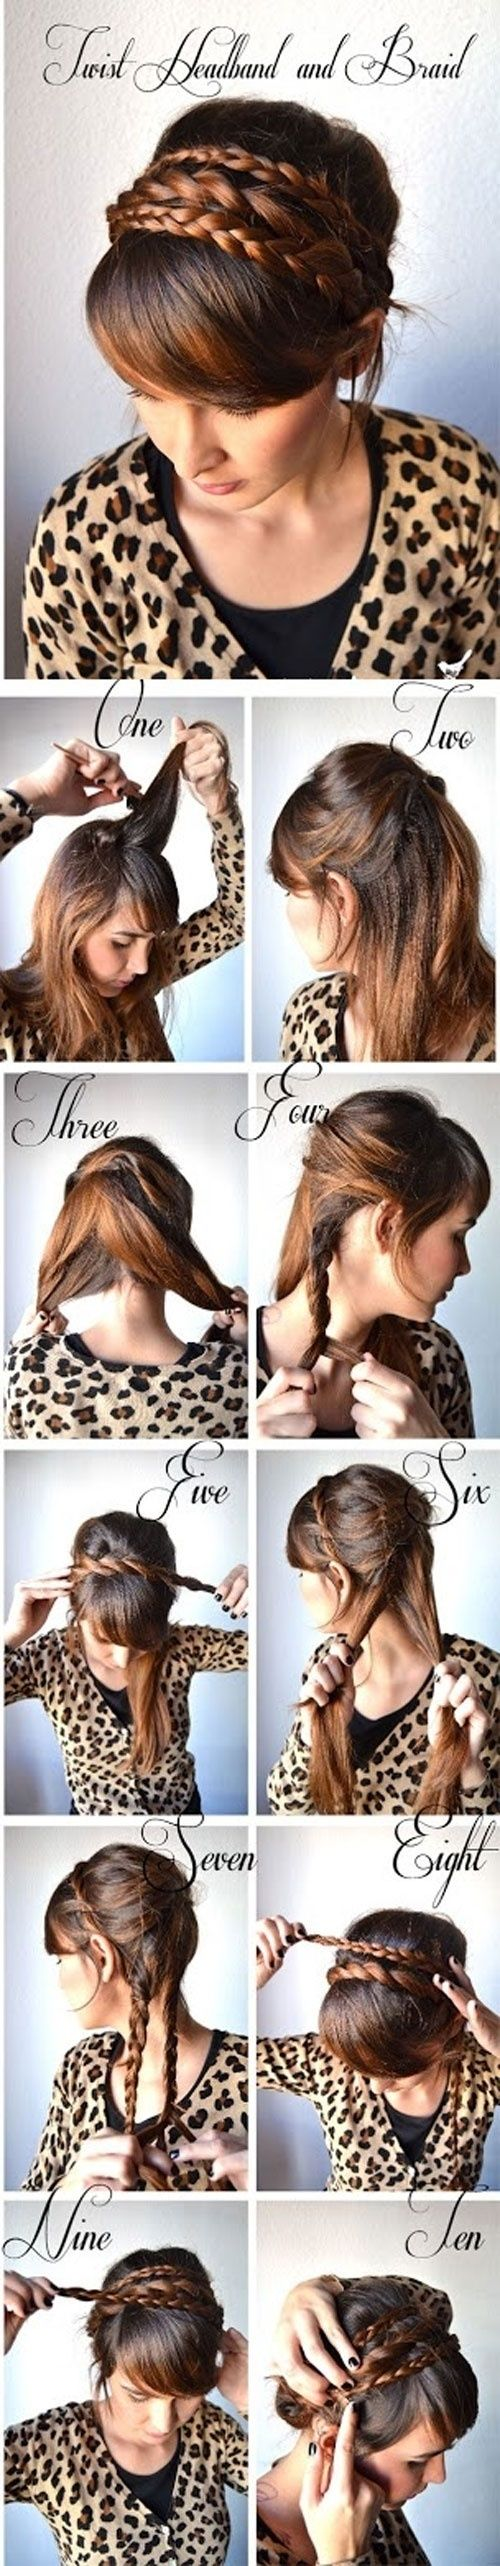 40 trendy victorian hairstyle tutorials to stay stylish and elegant braid hairstyle tutorial baditri Gallery